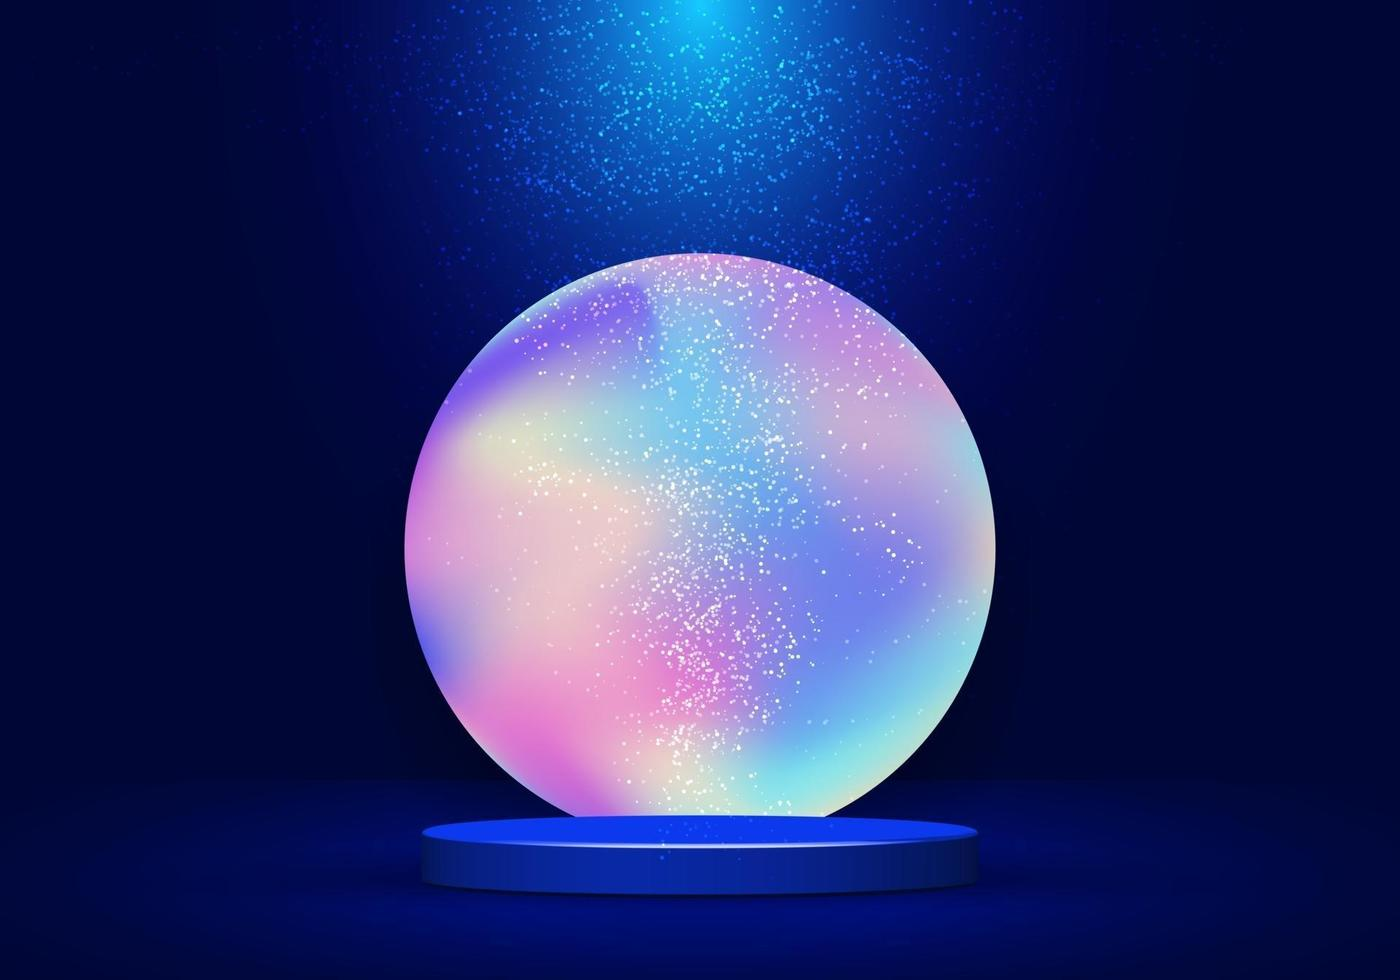 3D realistic blue pedestal with vibrant fluid circle backdrop and lighting dust on dark blue background vector